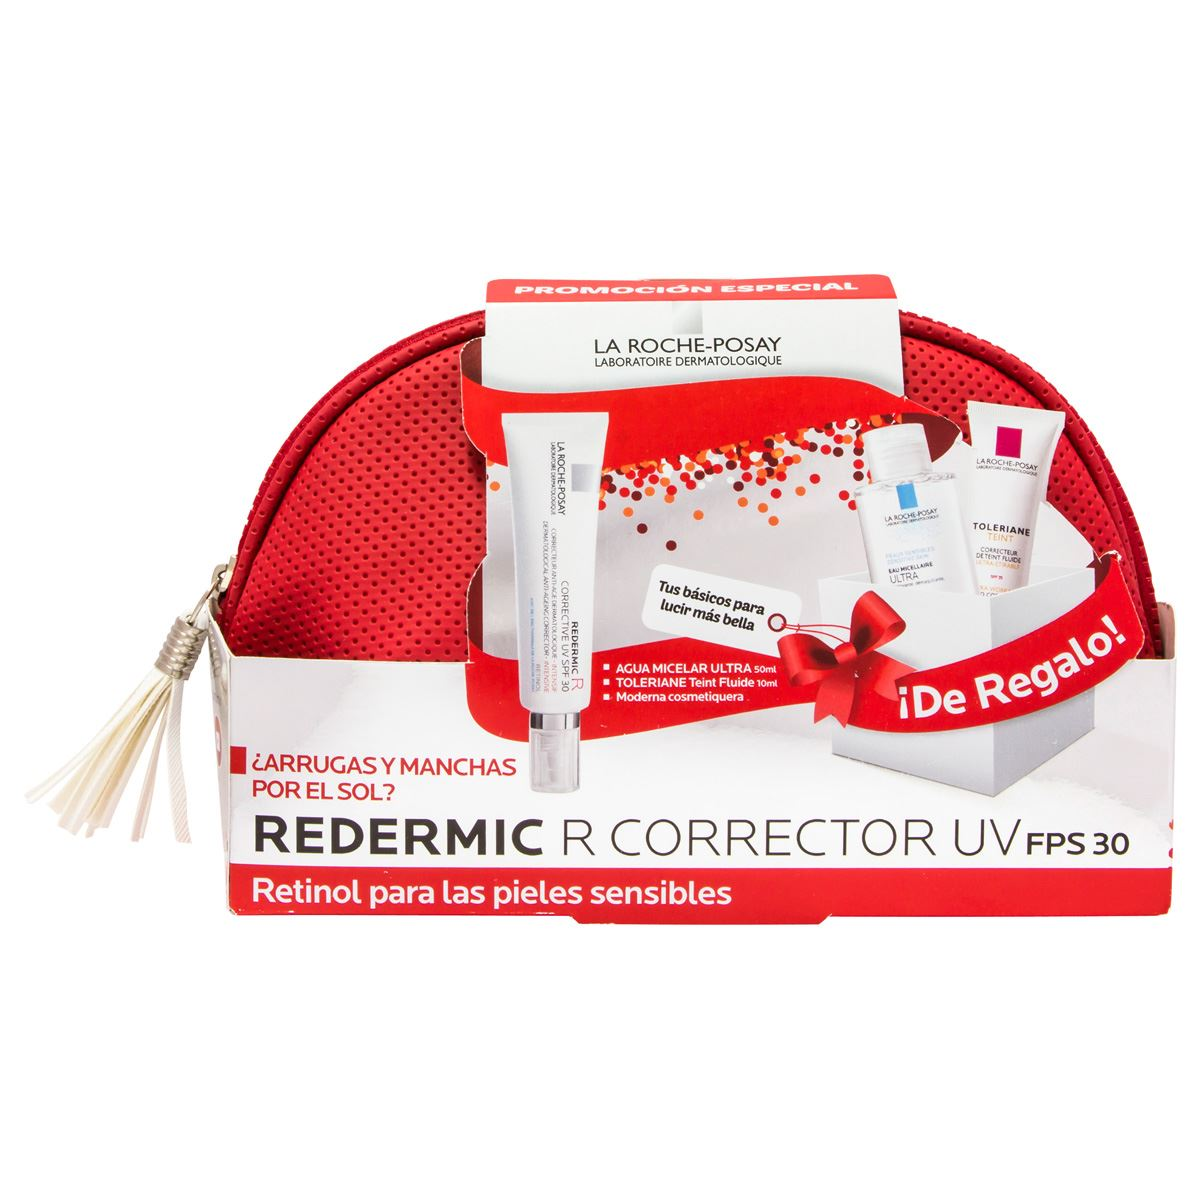 Pack Redermic R Corrector Uv Fps 30 para Pieles Sensibles